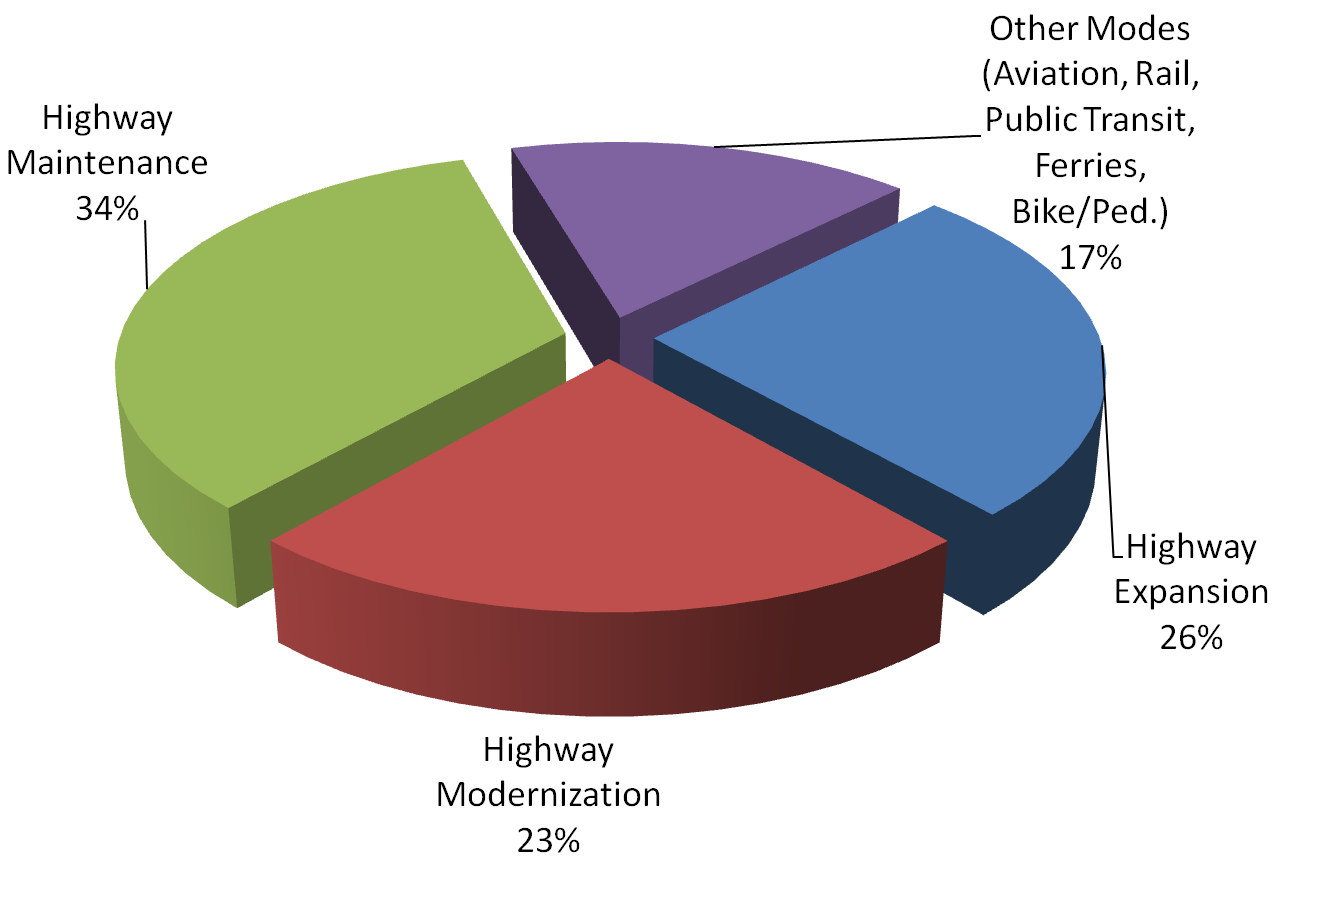 Recommended allocation of future funds